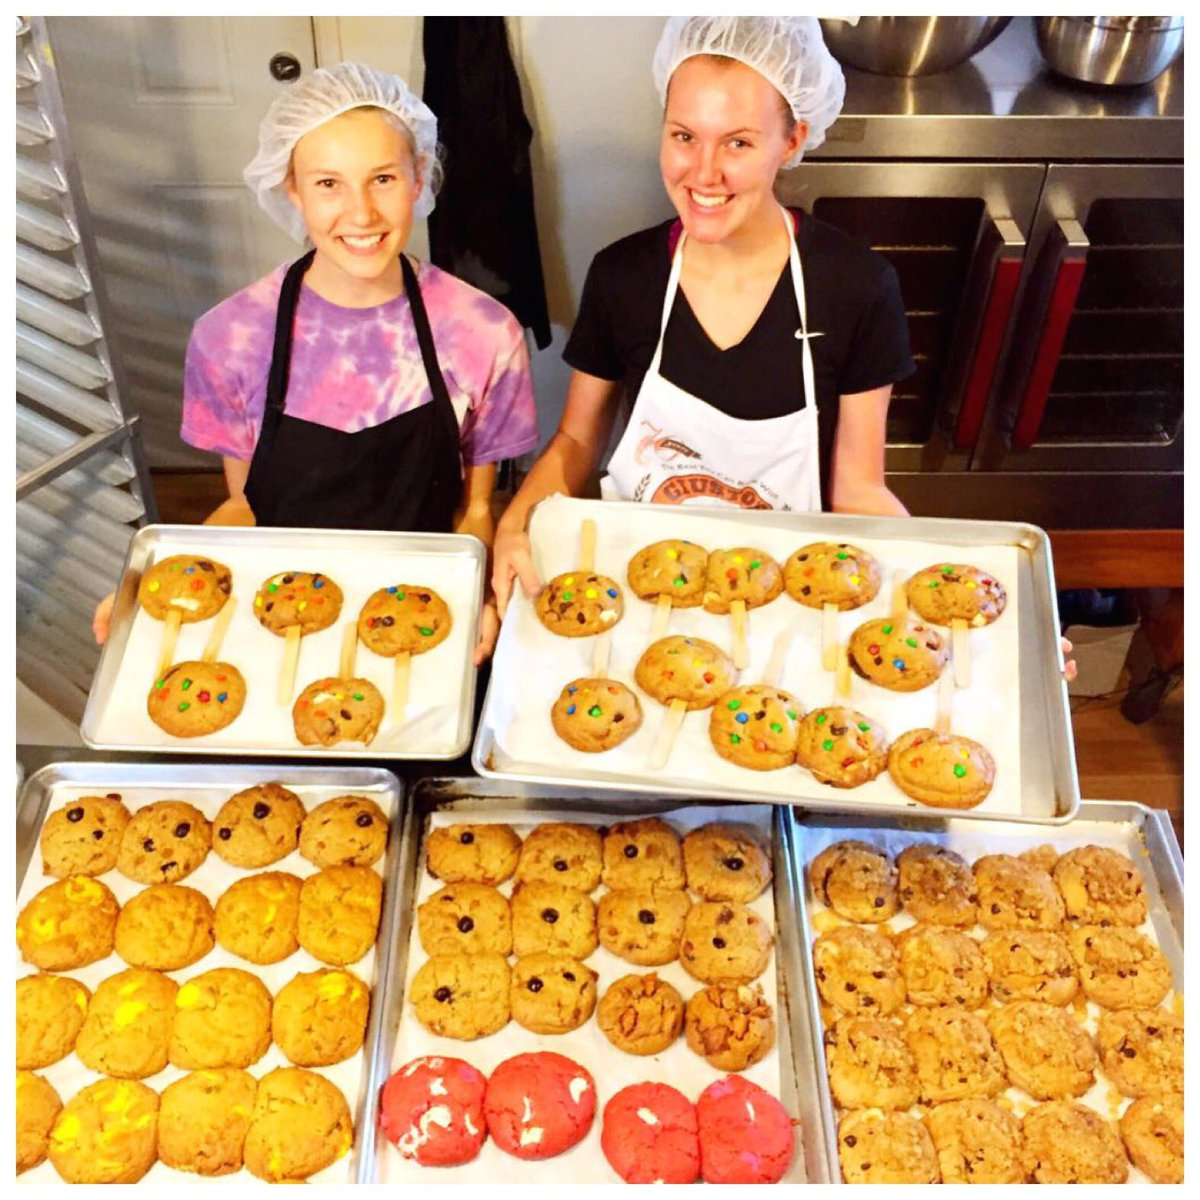 Our adorable cookie elves hard at work making bellies happy near and far #cookiesfordays #cookiestagram #hawaiieats